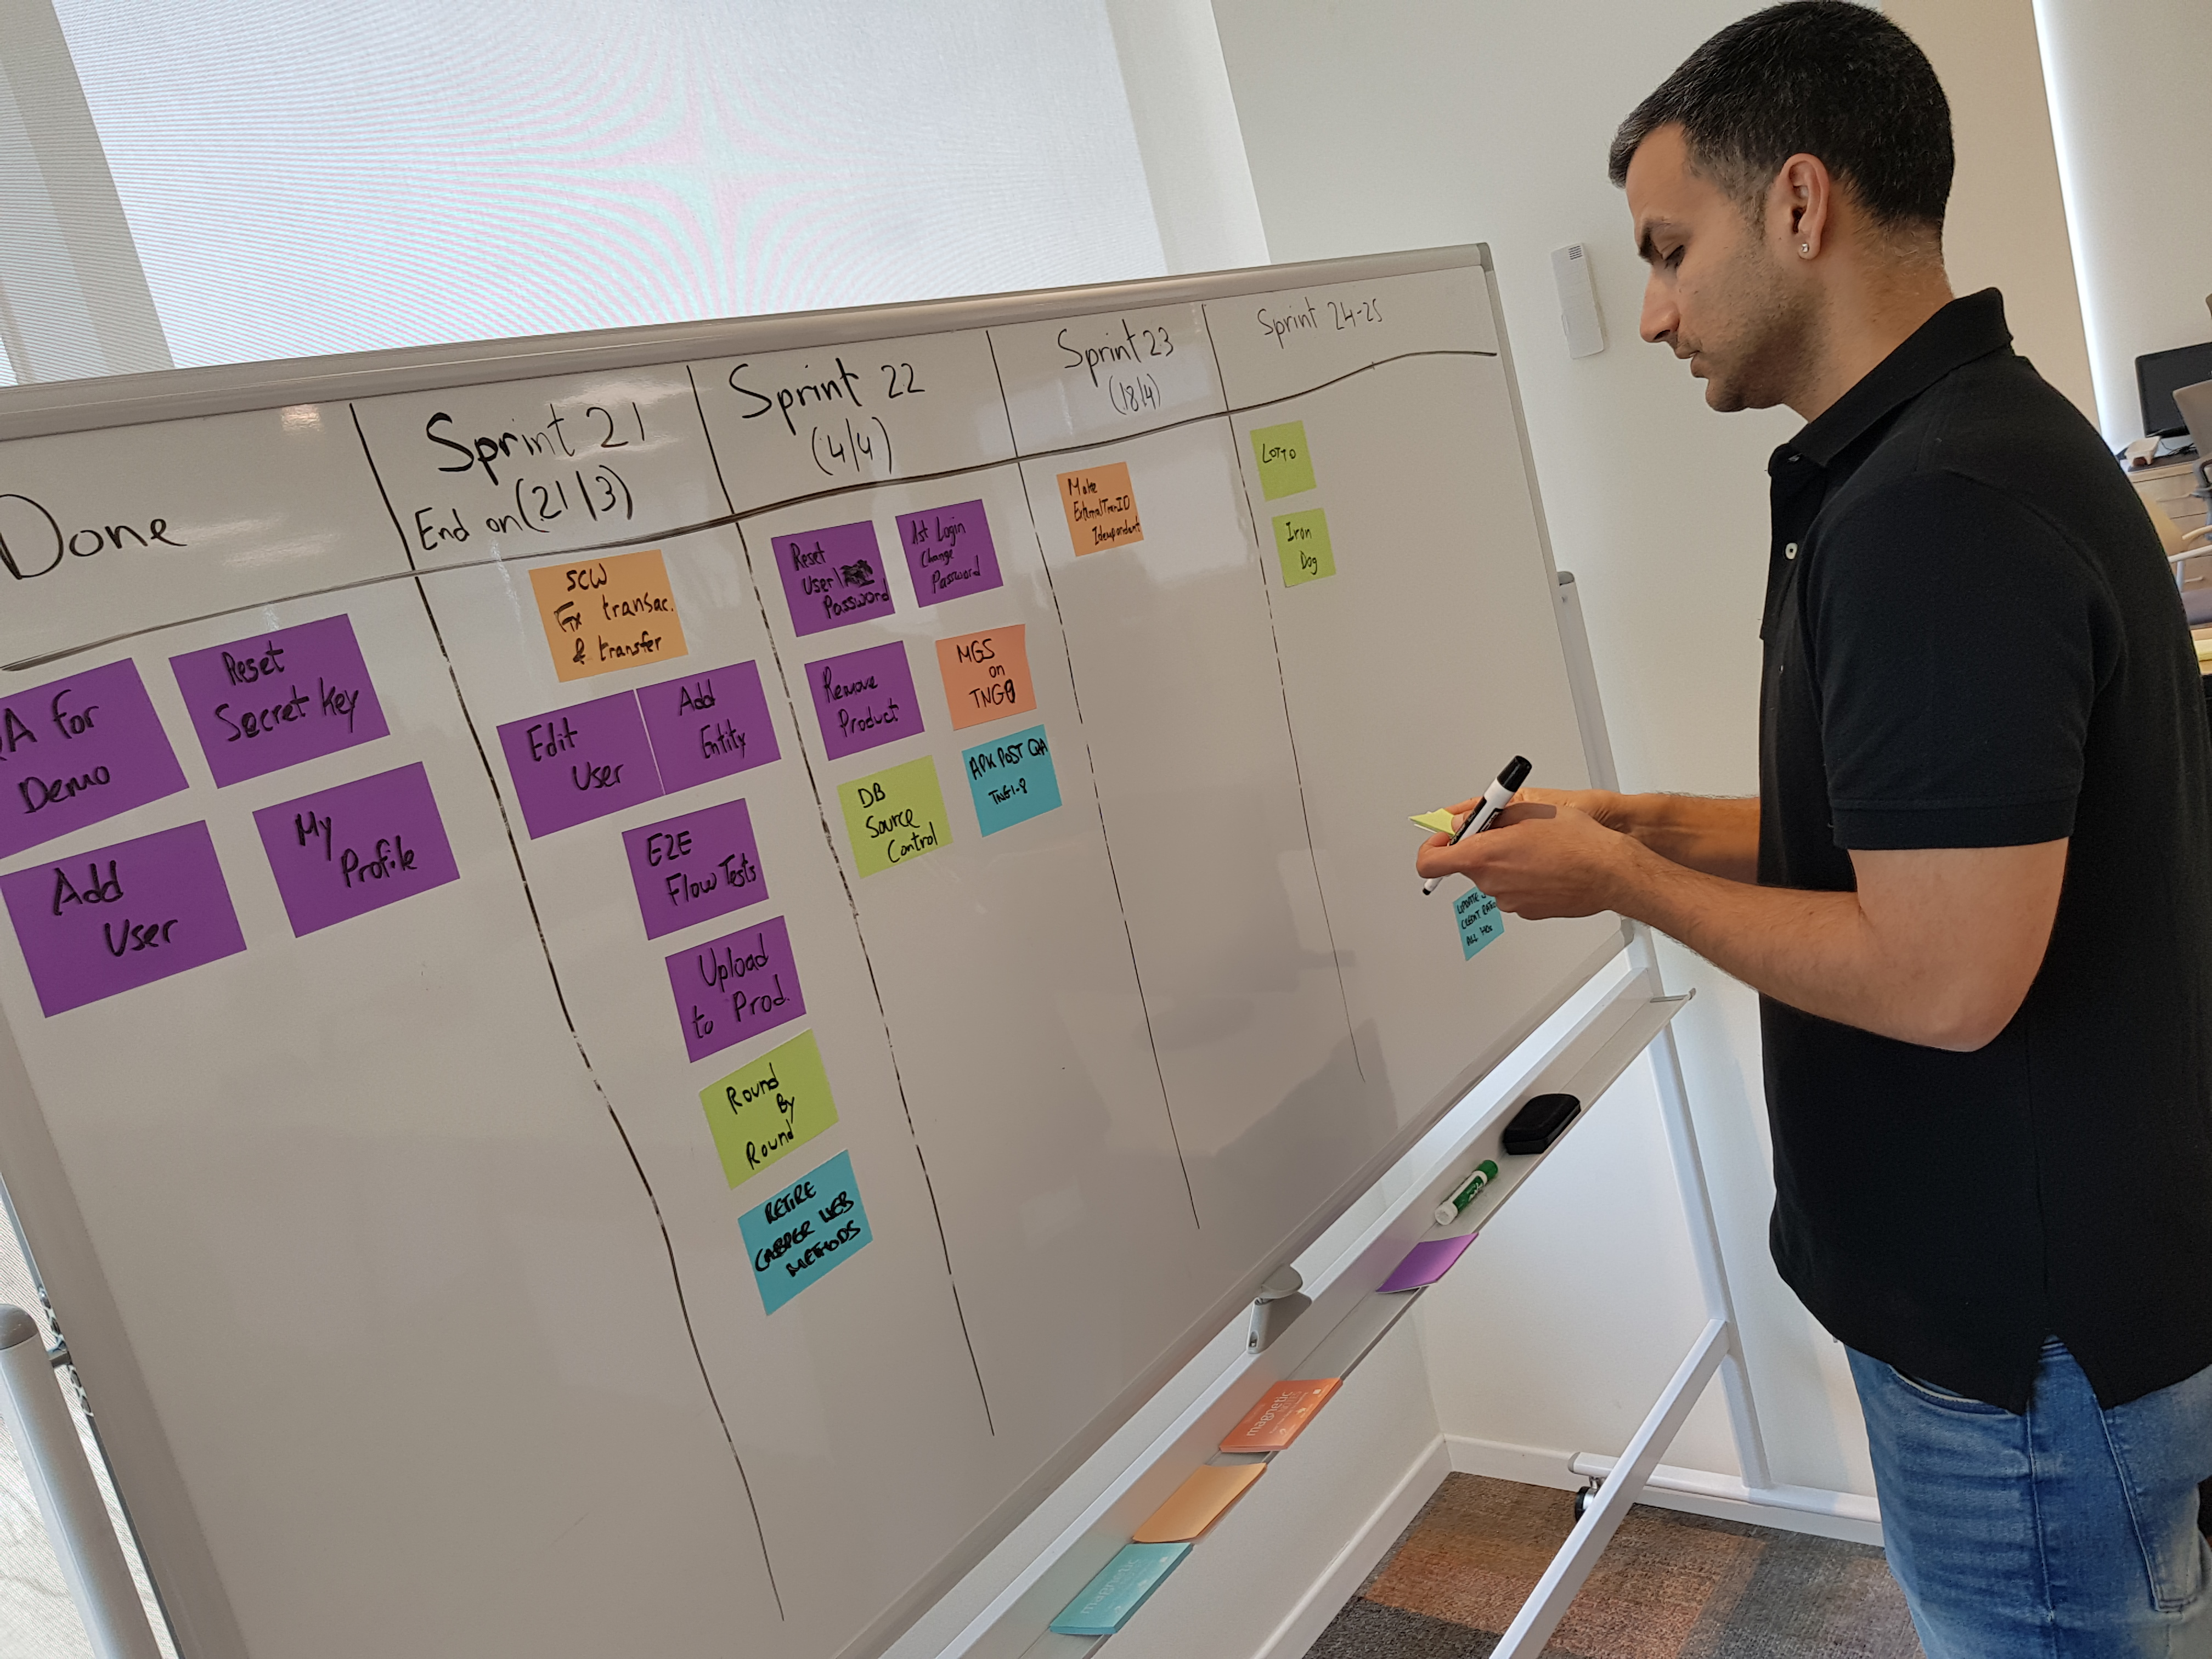 product owner sprints board - long term planning